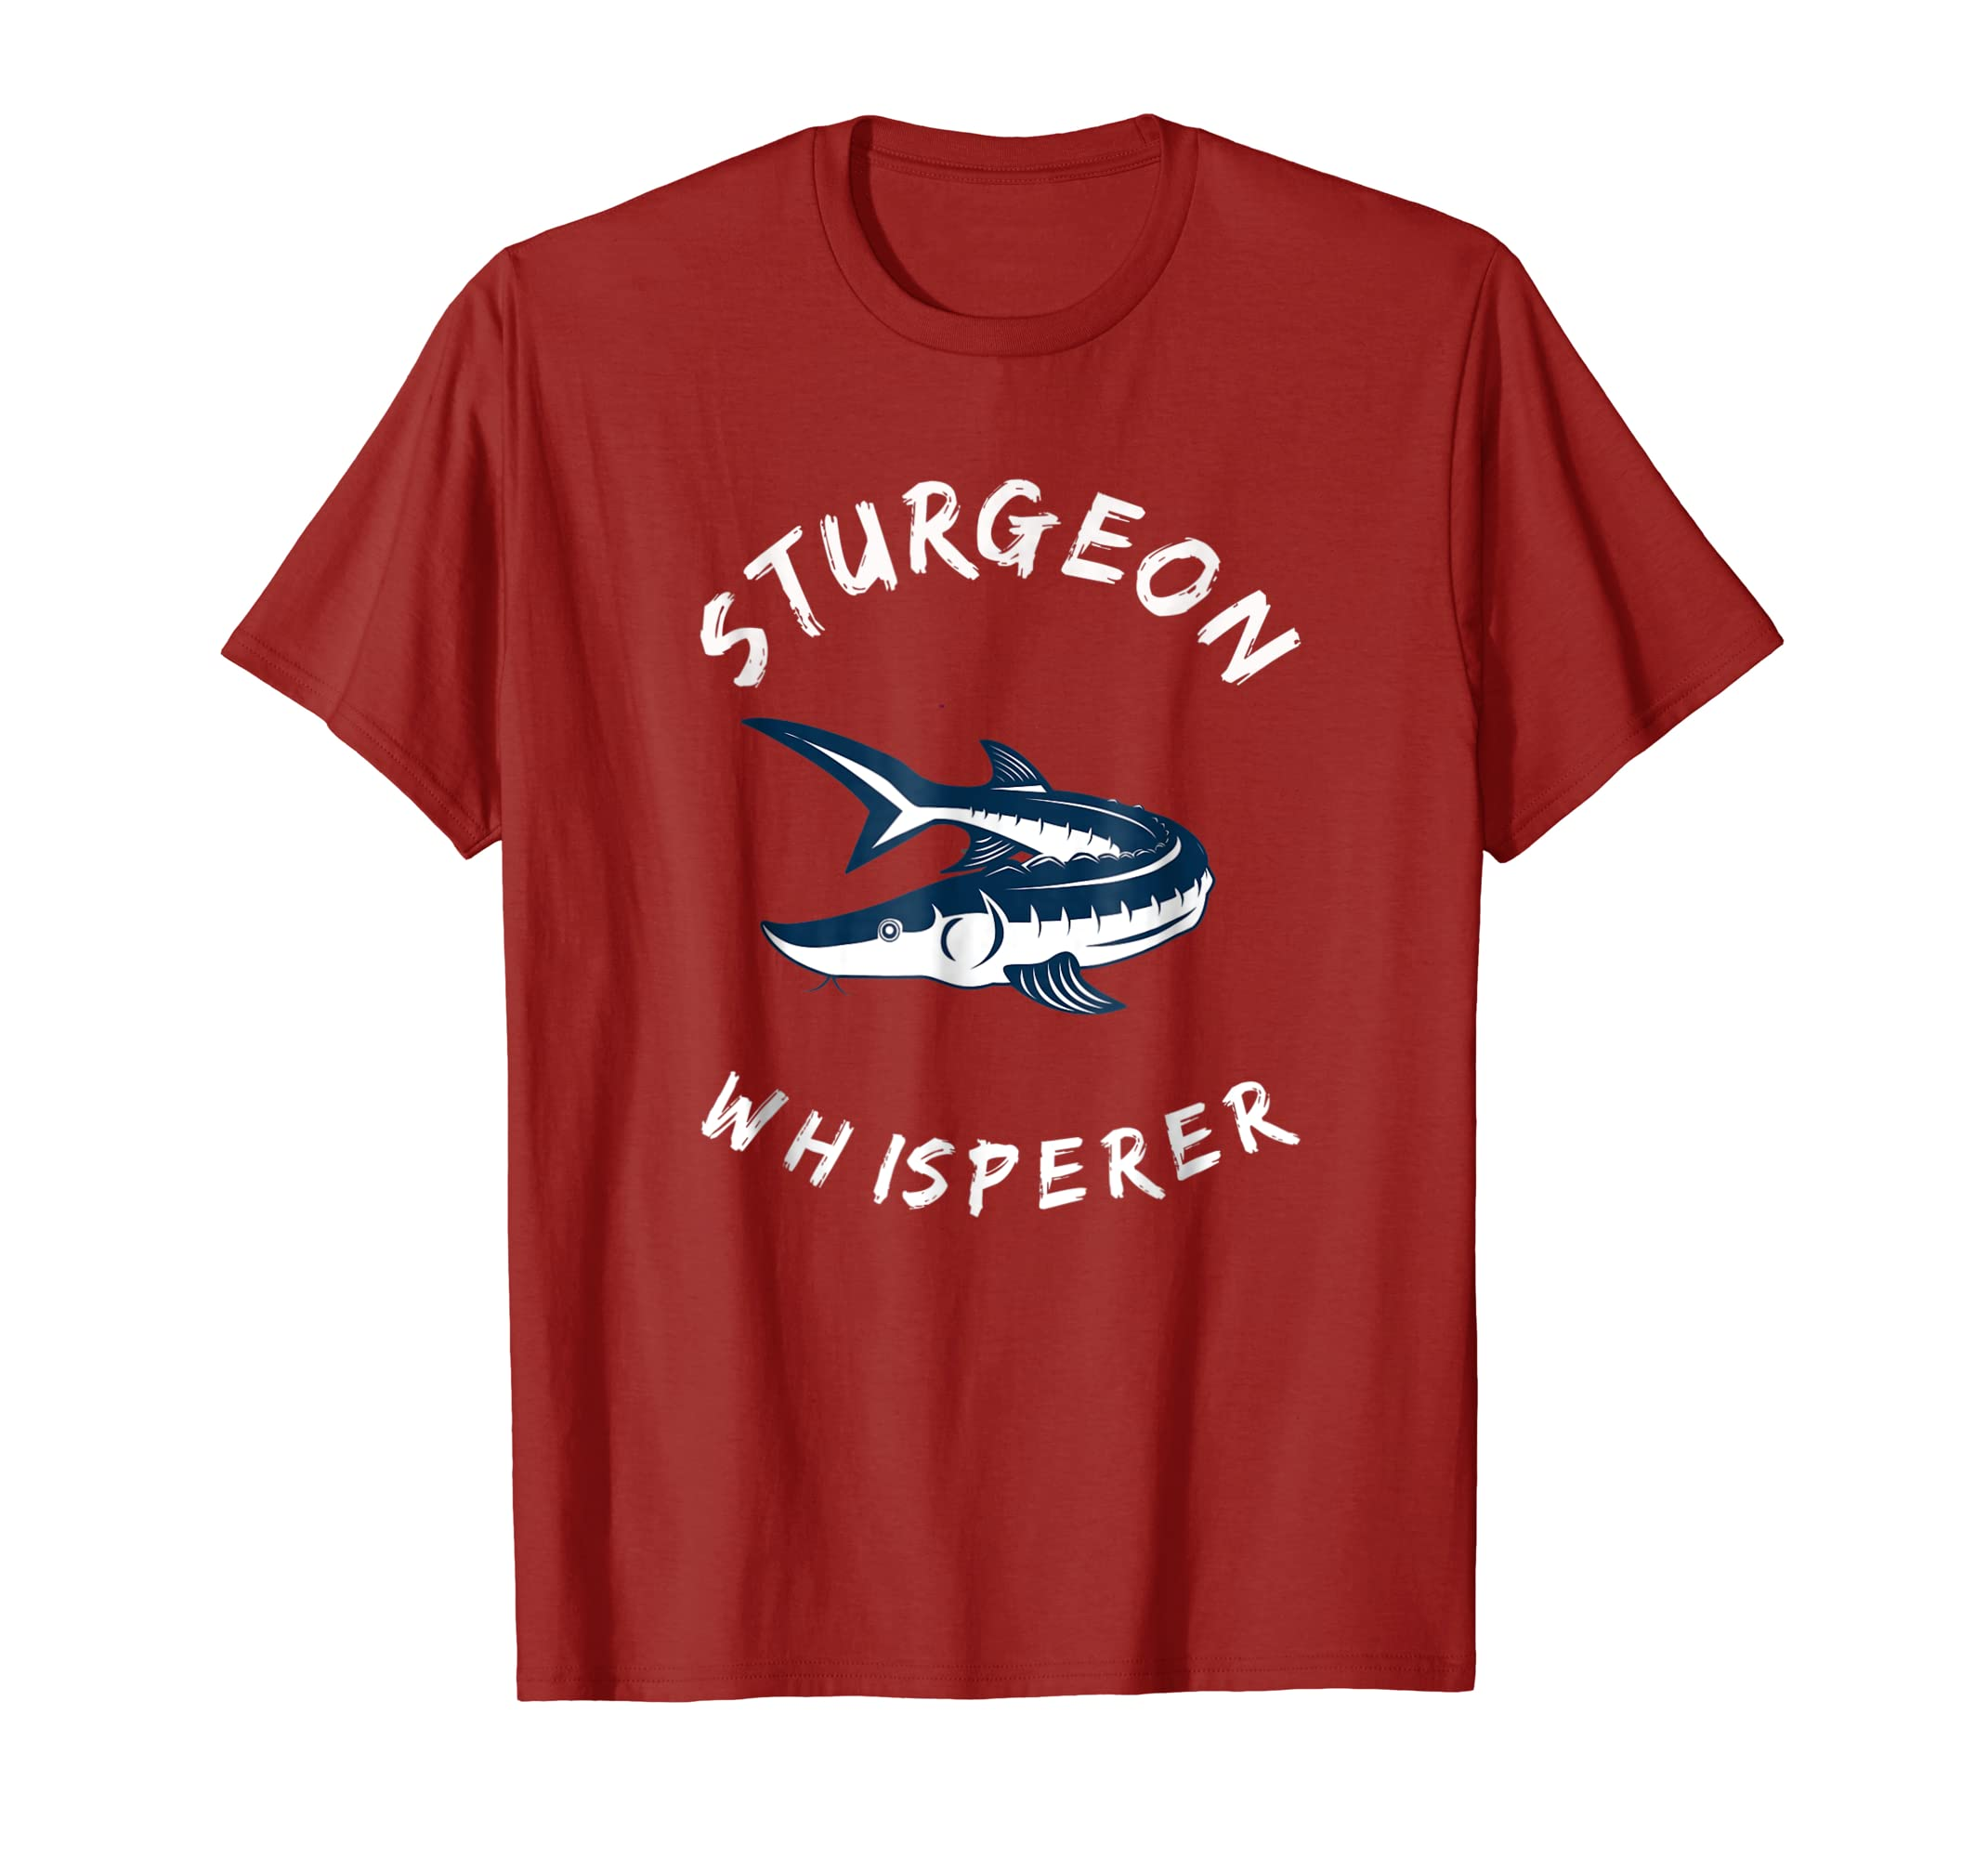 Sturgeon Whisperer Funny Fishing T Shirt